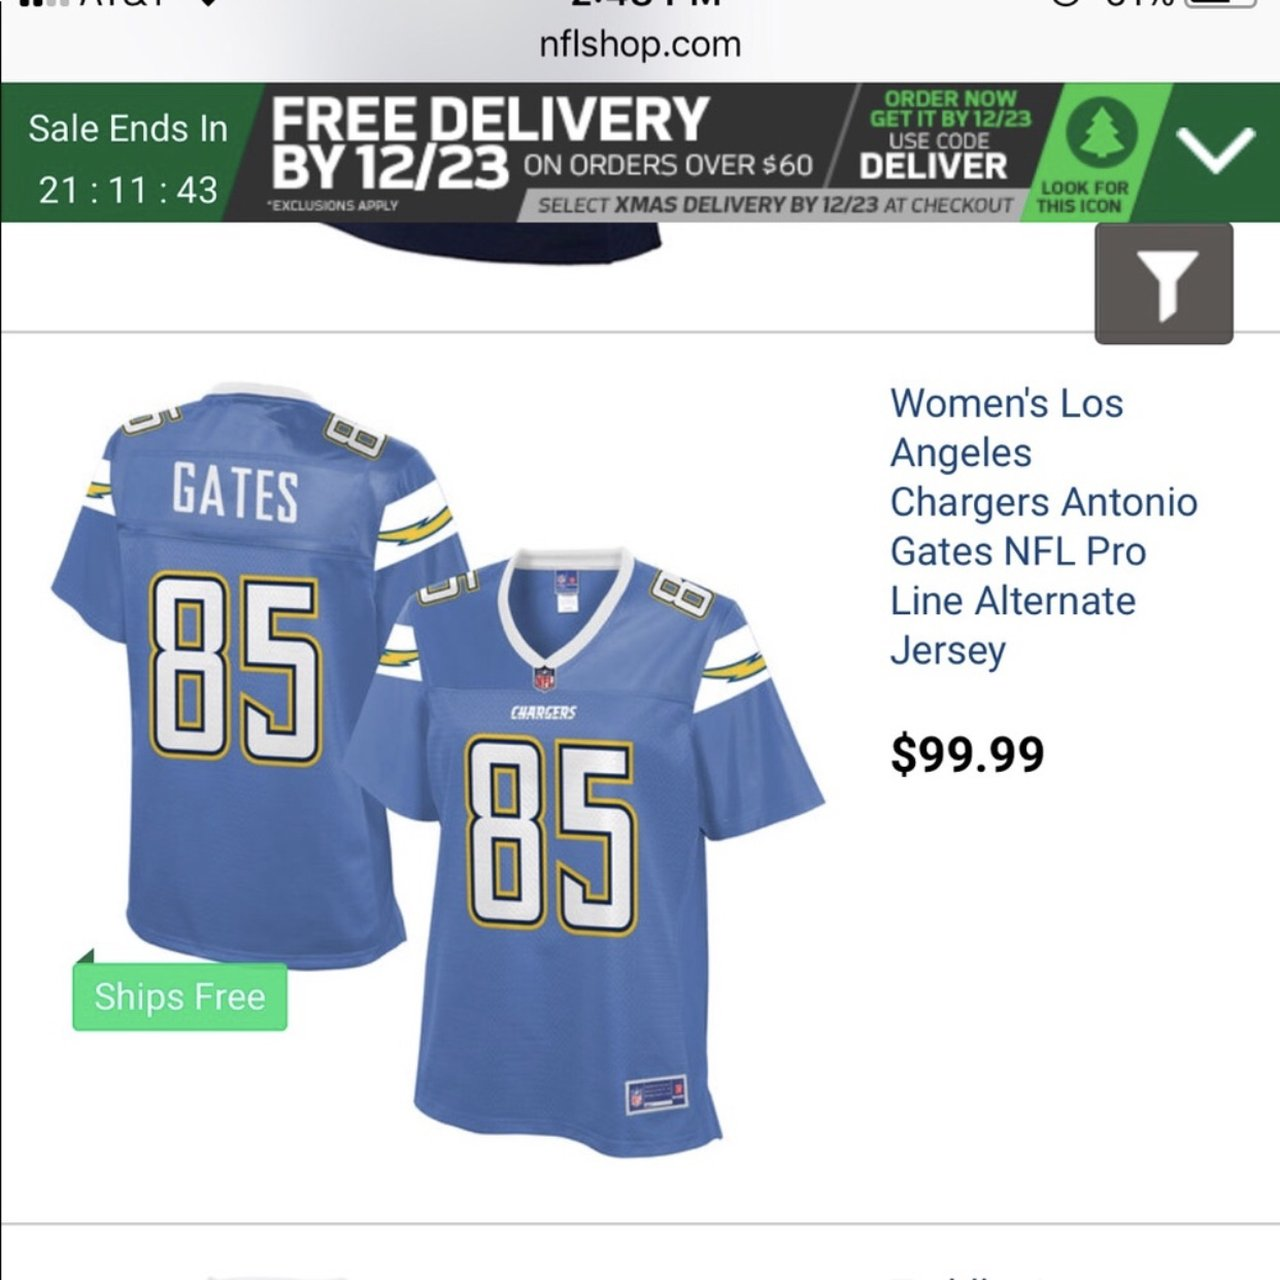 0a7376cf2 authentic antonio gates nfl chargers.  60 · DUH Unif Jersey Perfect  condition!